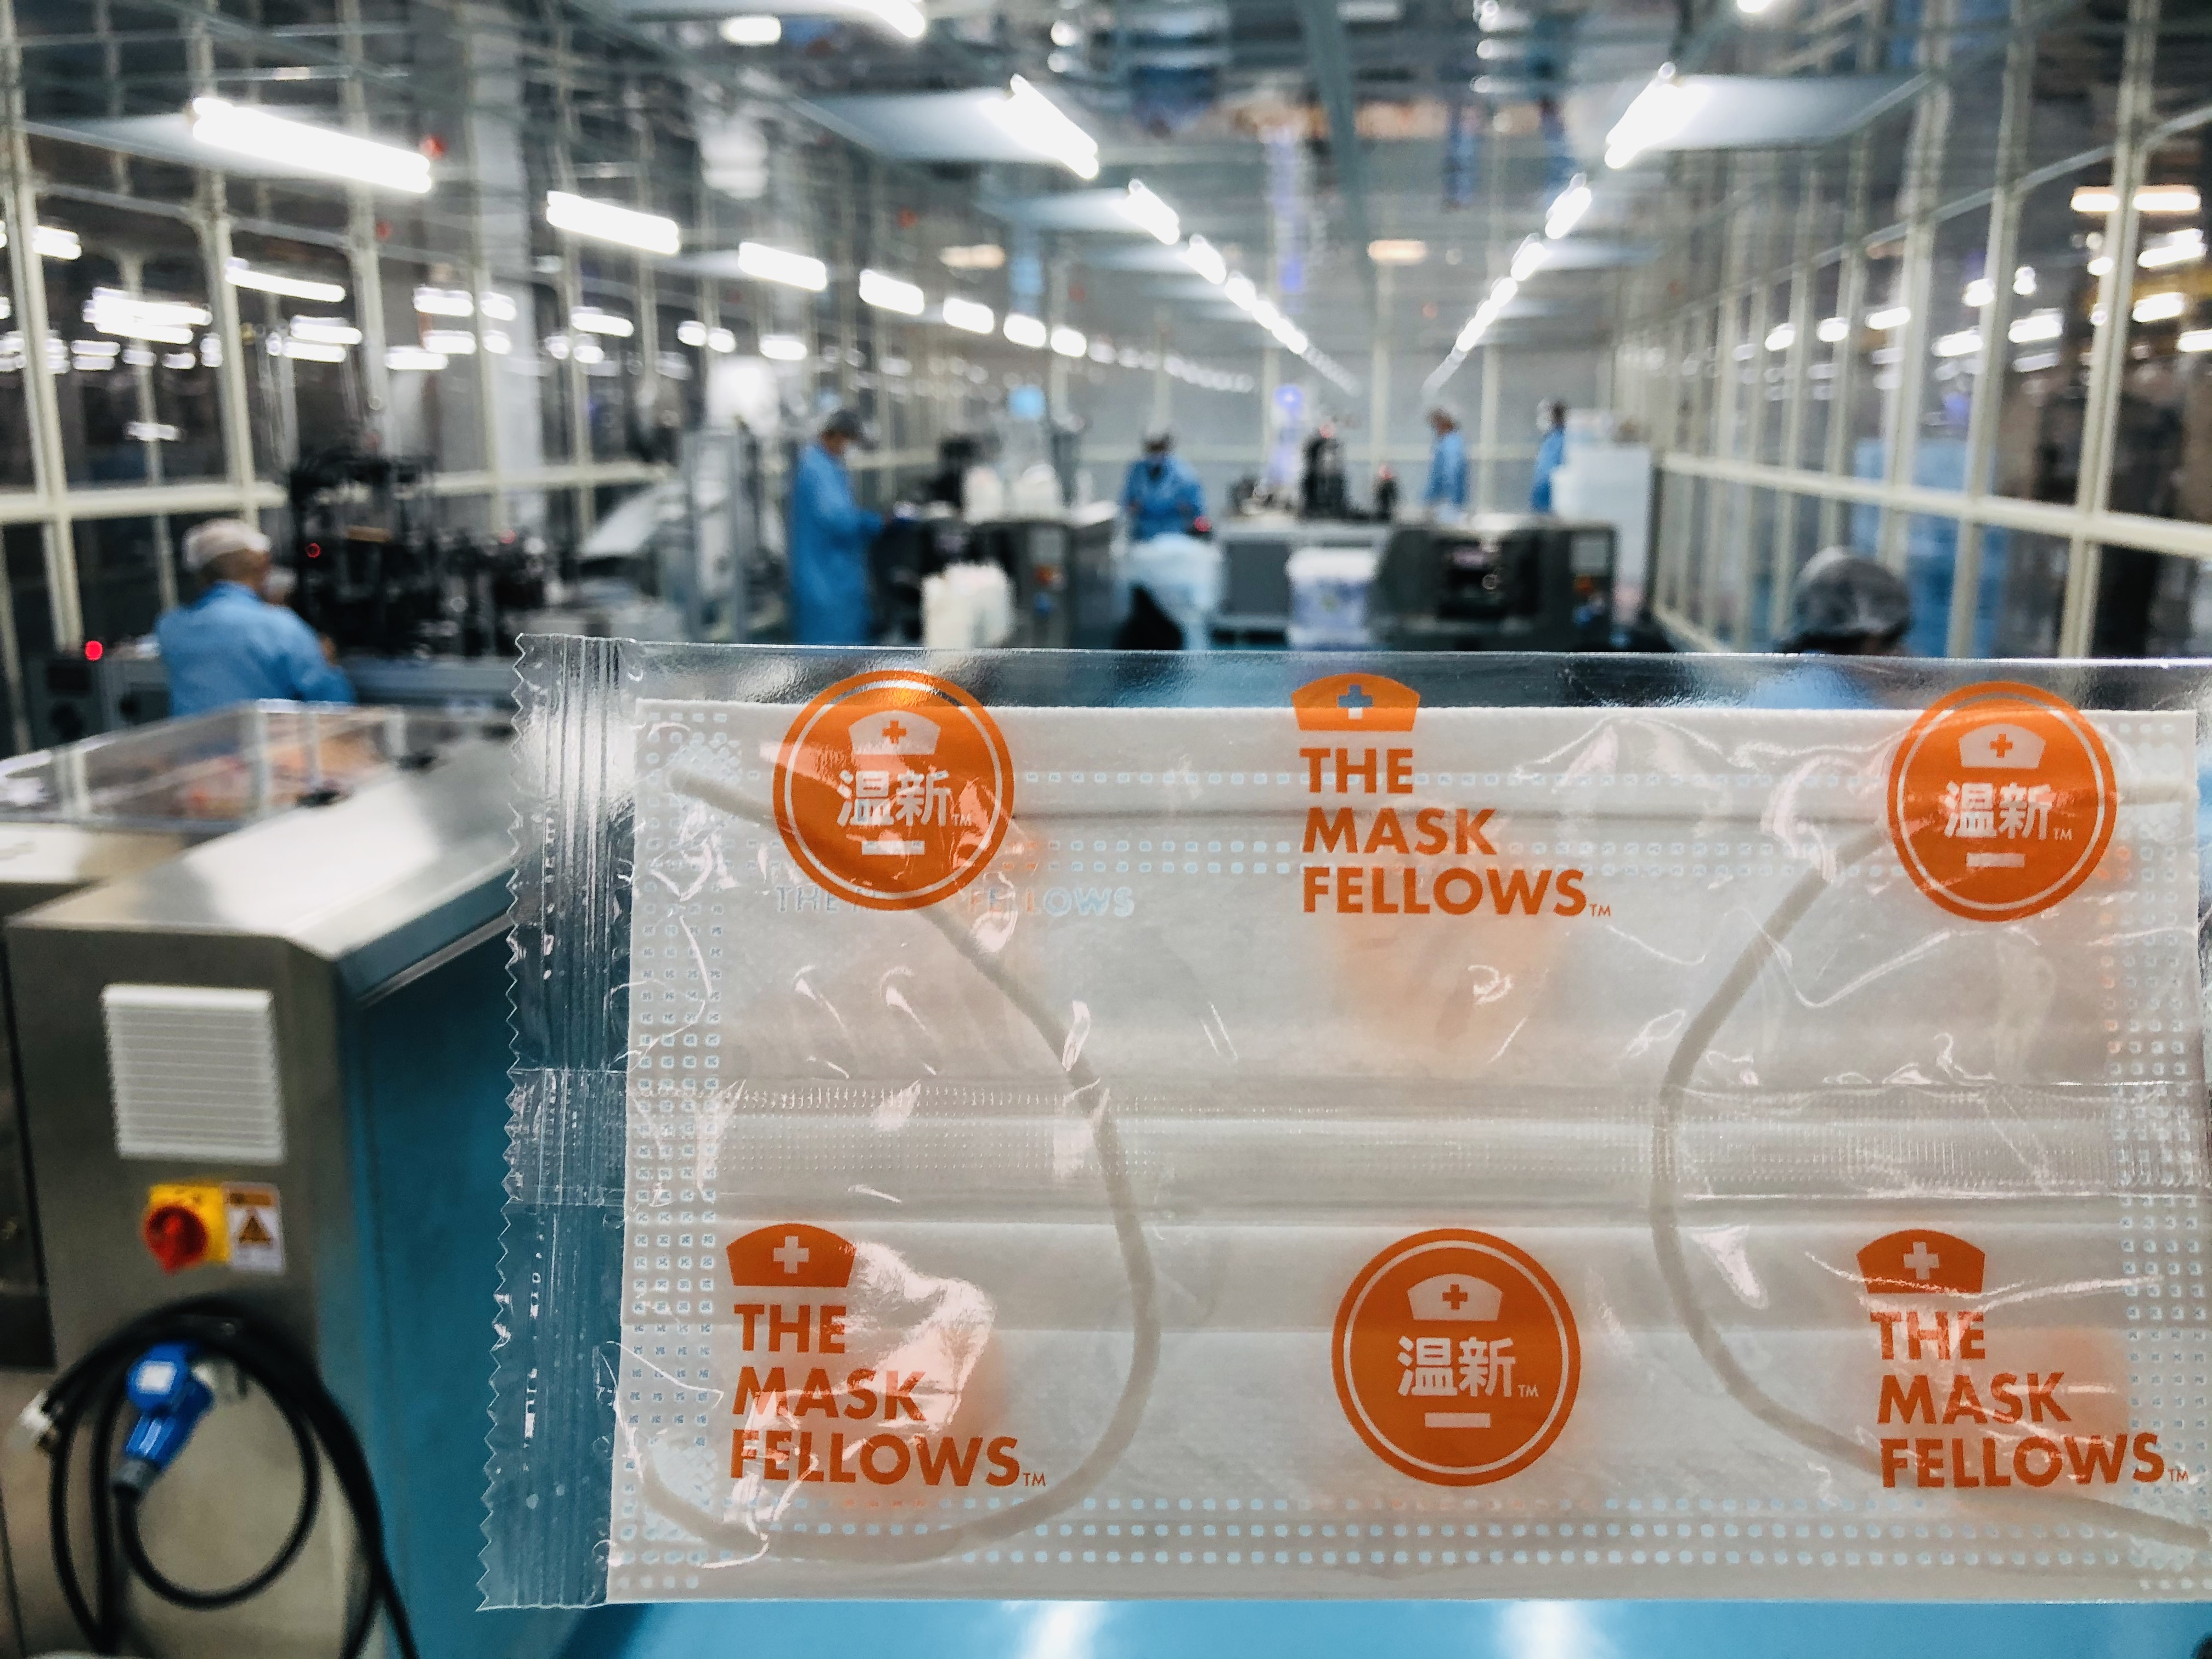 The Mask Fellows Individually Wrapped Surgical Mask